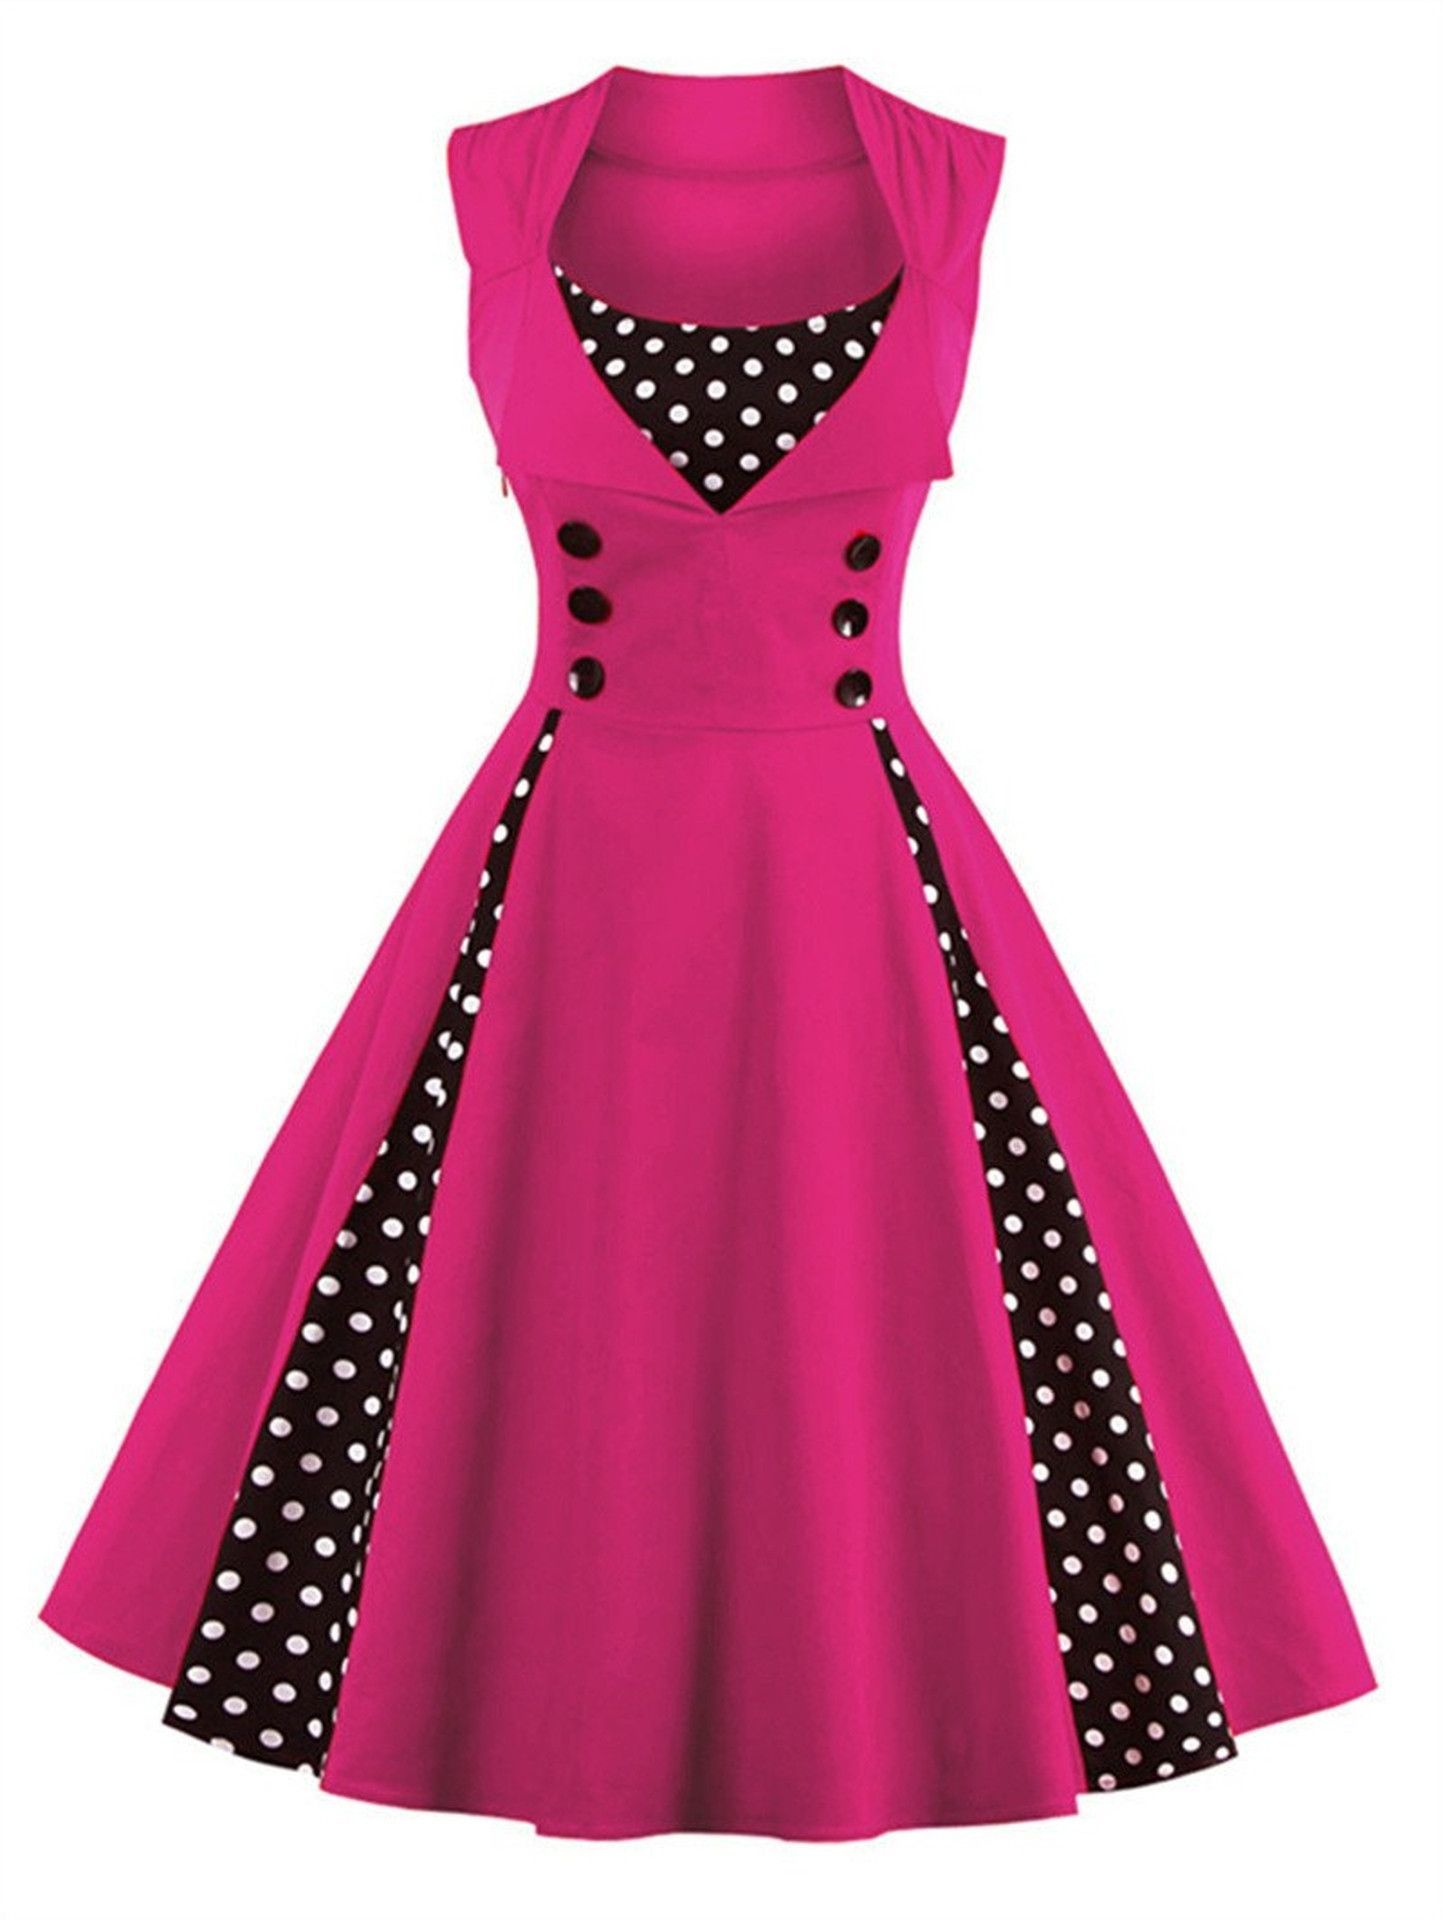 Vintage Dot Pin Up Dress | Products | Pinterest | Costura, Hermosa y ...